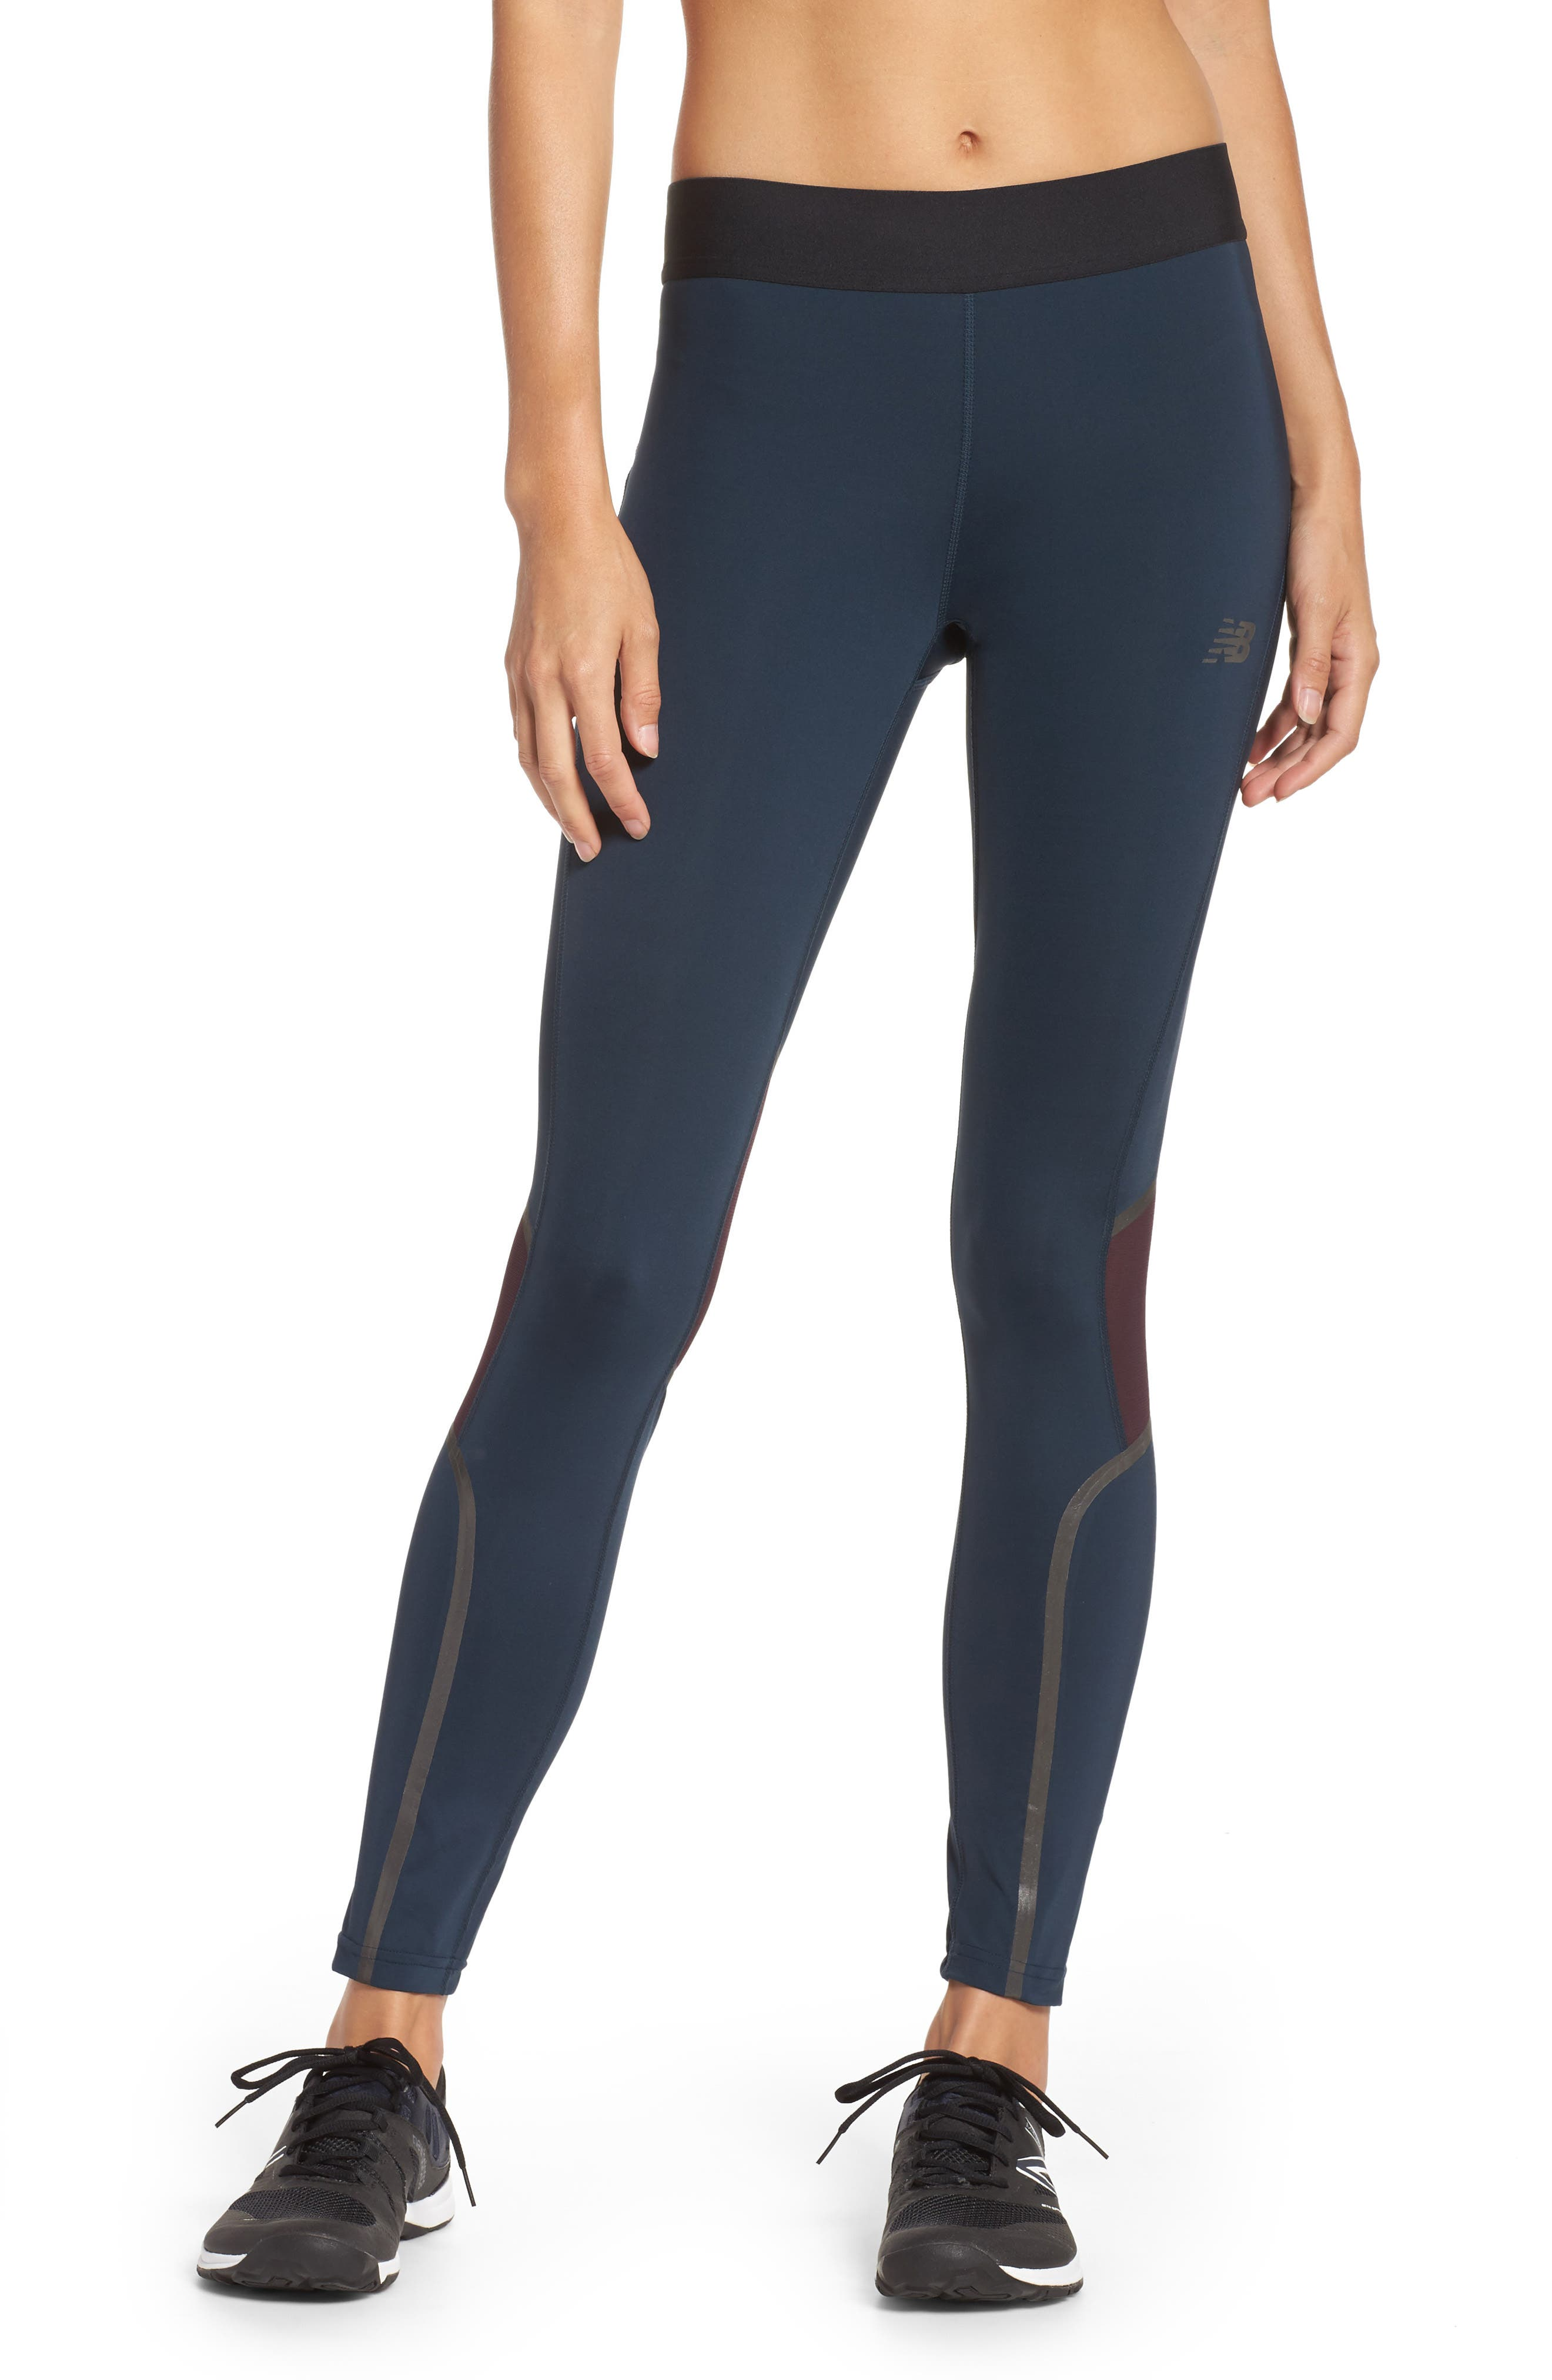 Precision Running Tights,                         Main,                         color, 424